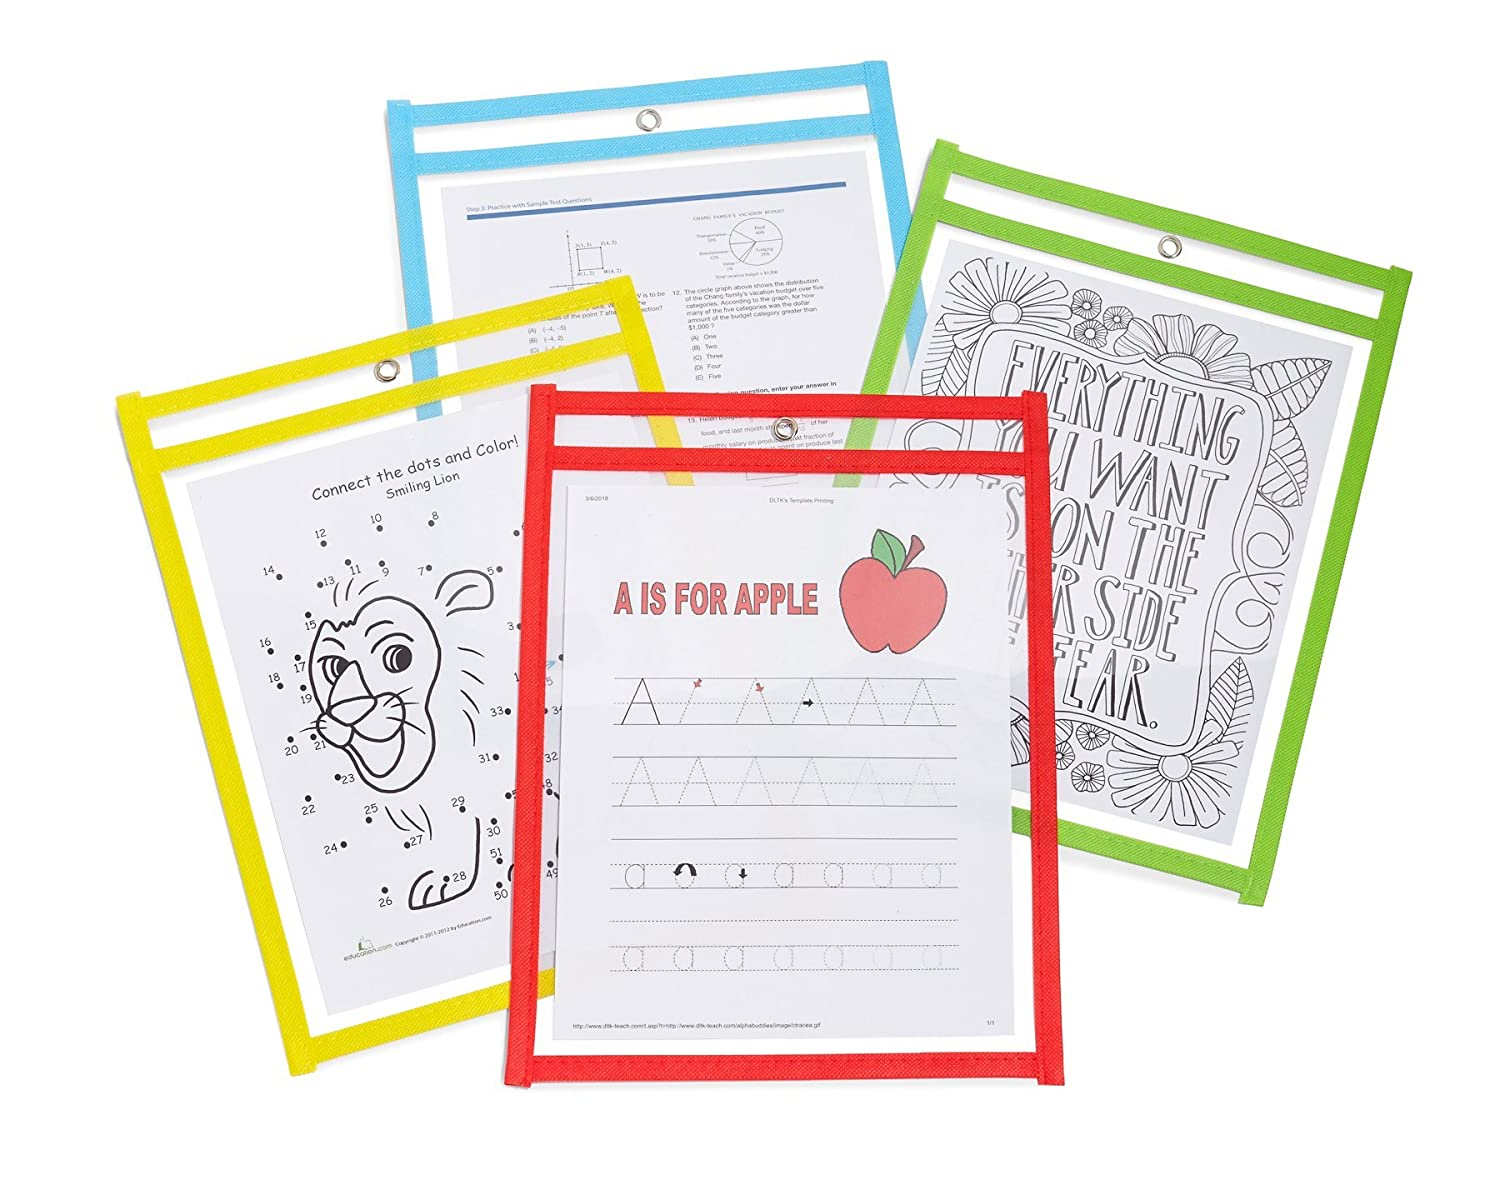 Reusable Dry Erase Pockets - Set of 25, Oversized 10x14, Assorted Colors -  Ideal for classroom, home, or work